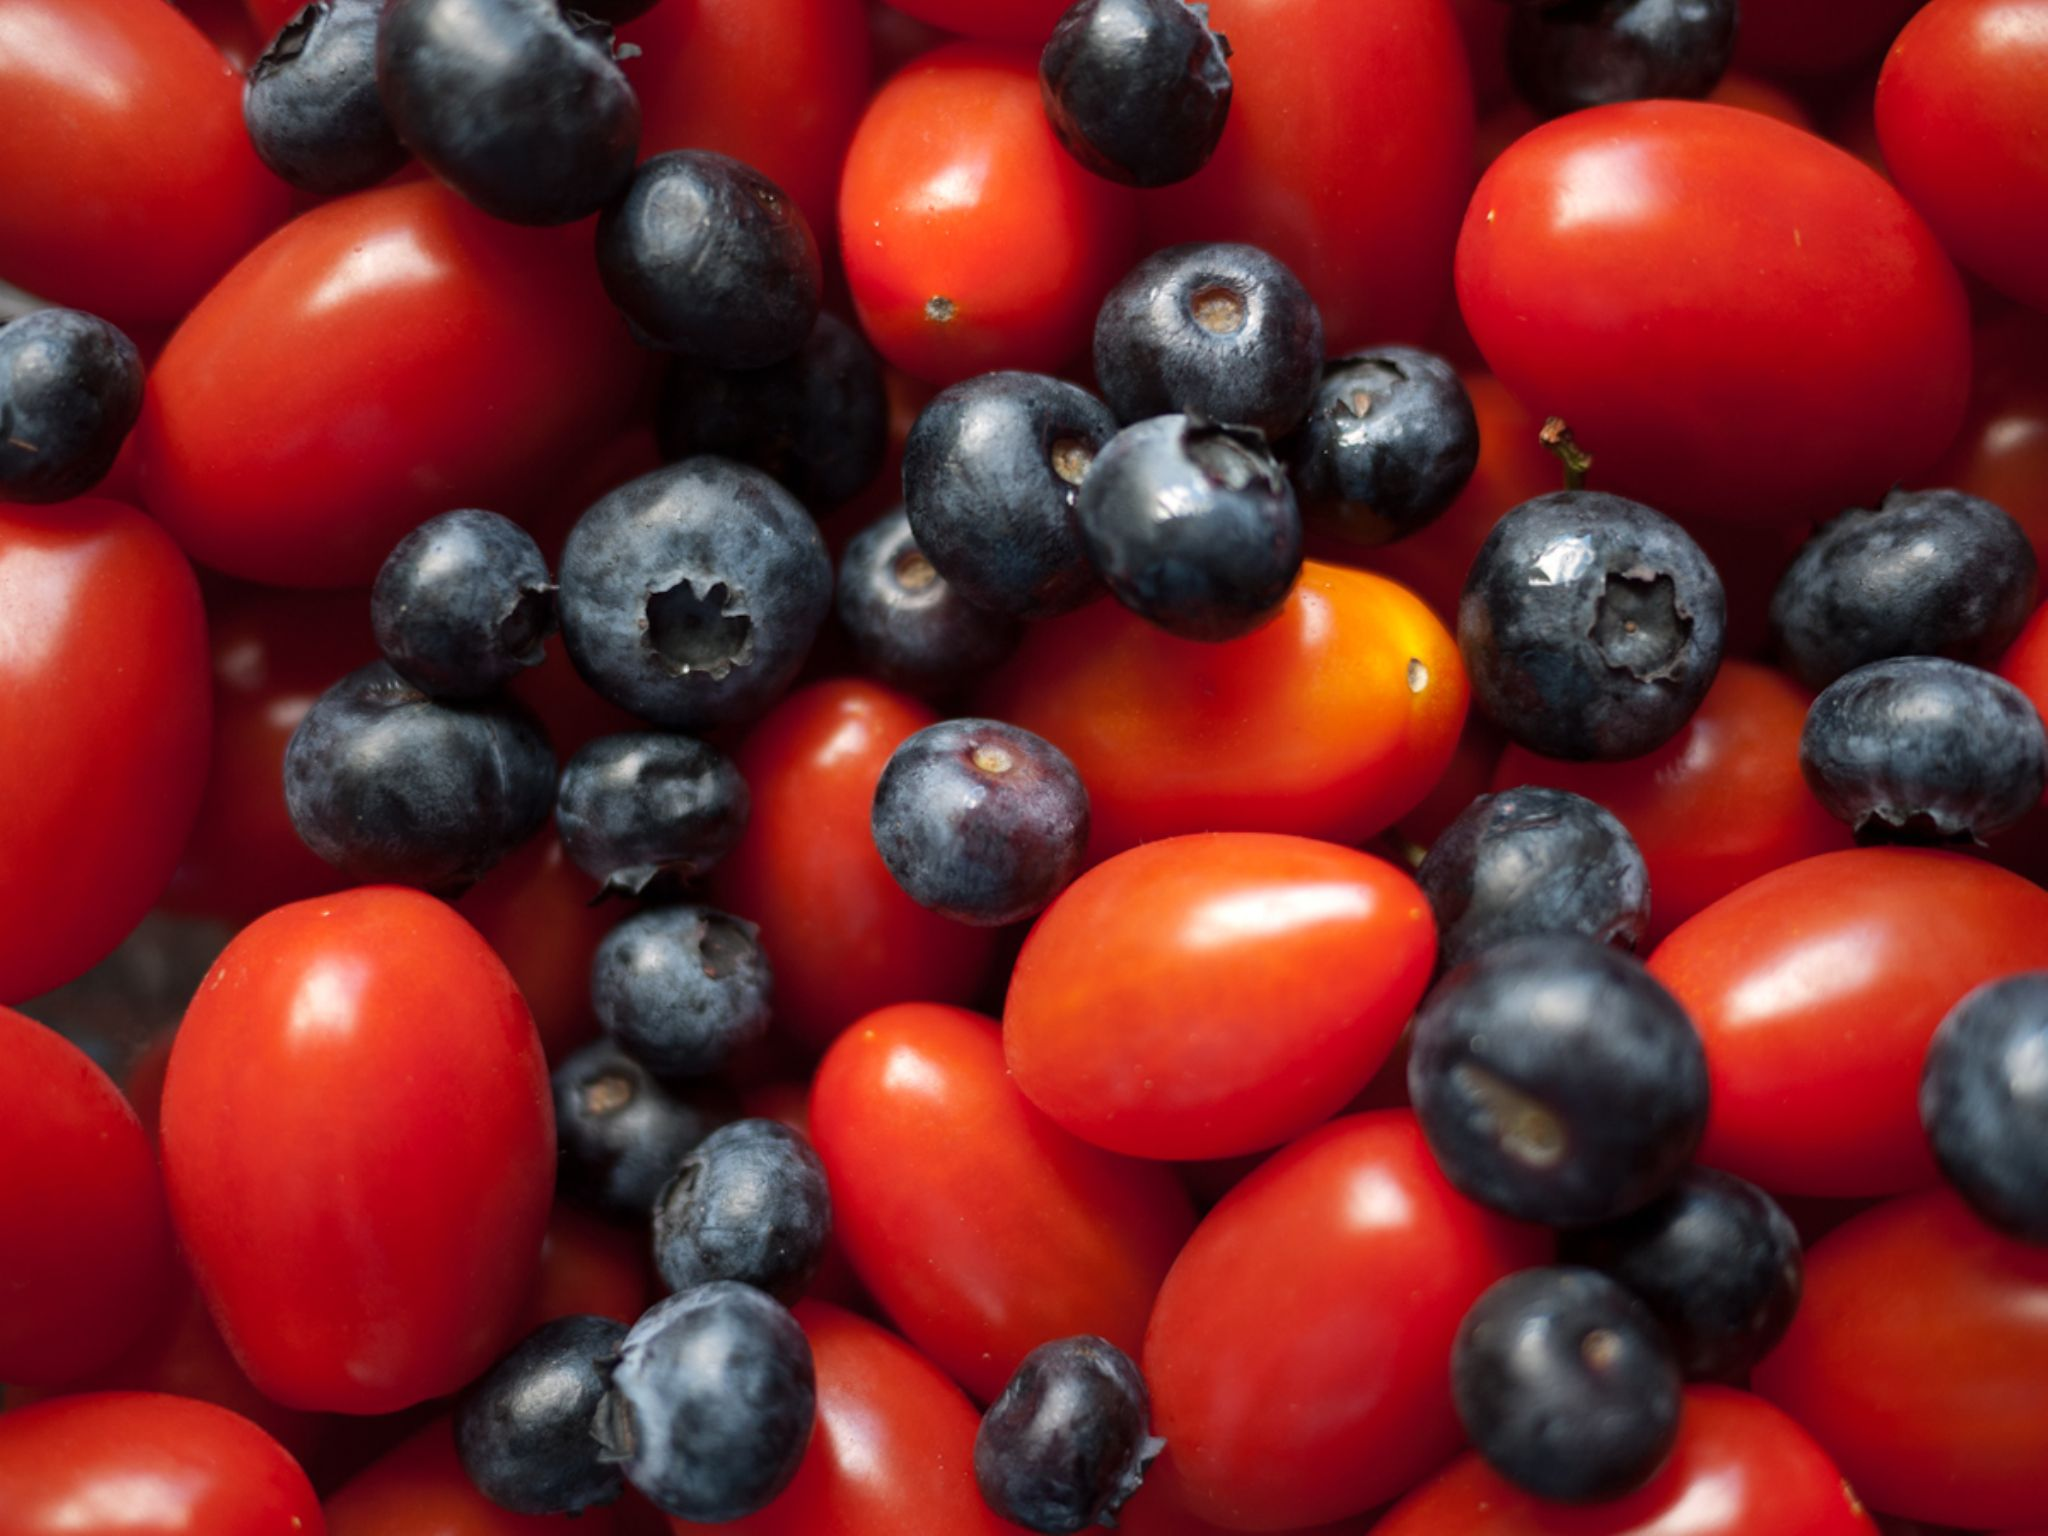 tomatoes and blueberries by Leann